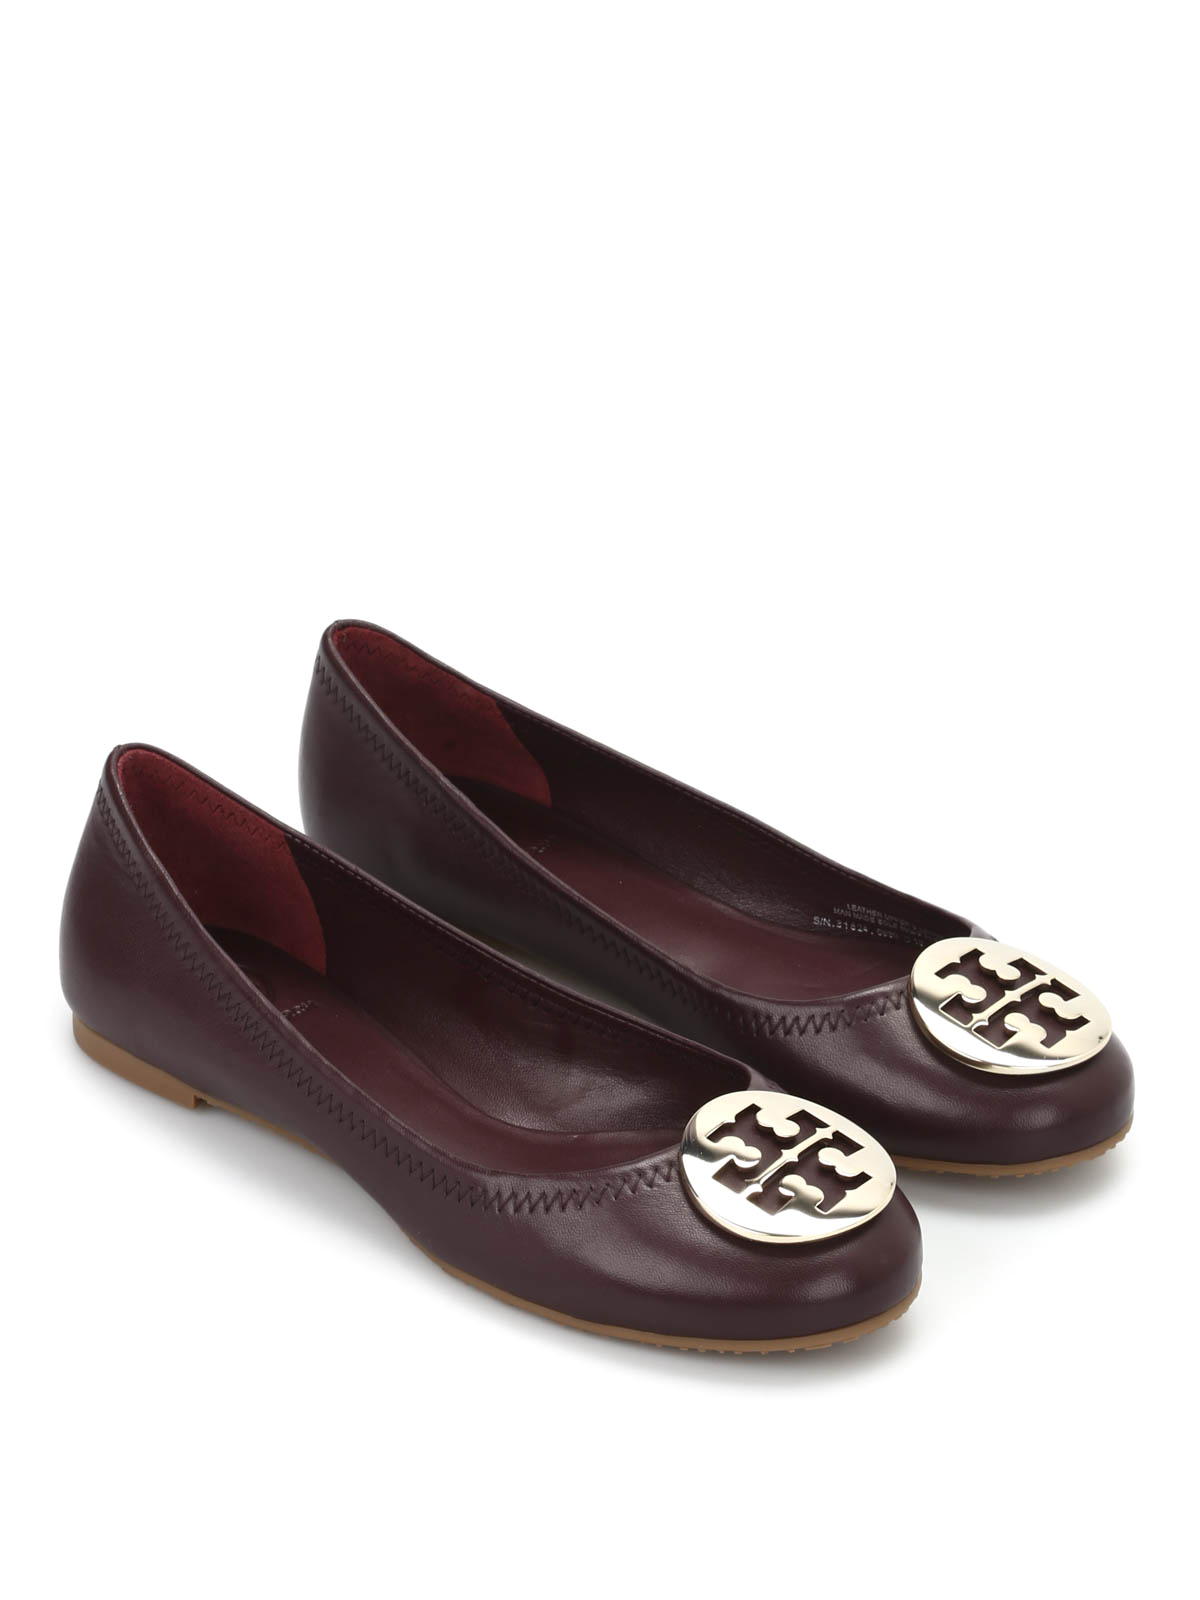 Used Tory Burch Ballet Flats SIZE 4 ~ Authentic gently worn for sale in Coram - Tory Burch Ballet Flats SIZE 4 ~ Authentic gently worn posted by Kathy Franzone-Wil in Coram. Gently worn SIZE 4, runs small and narrow. See pic for light scuff on front of shoes, however TB logo is untouched and still perfect. .